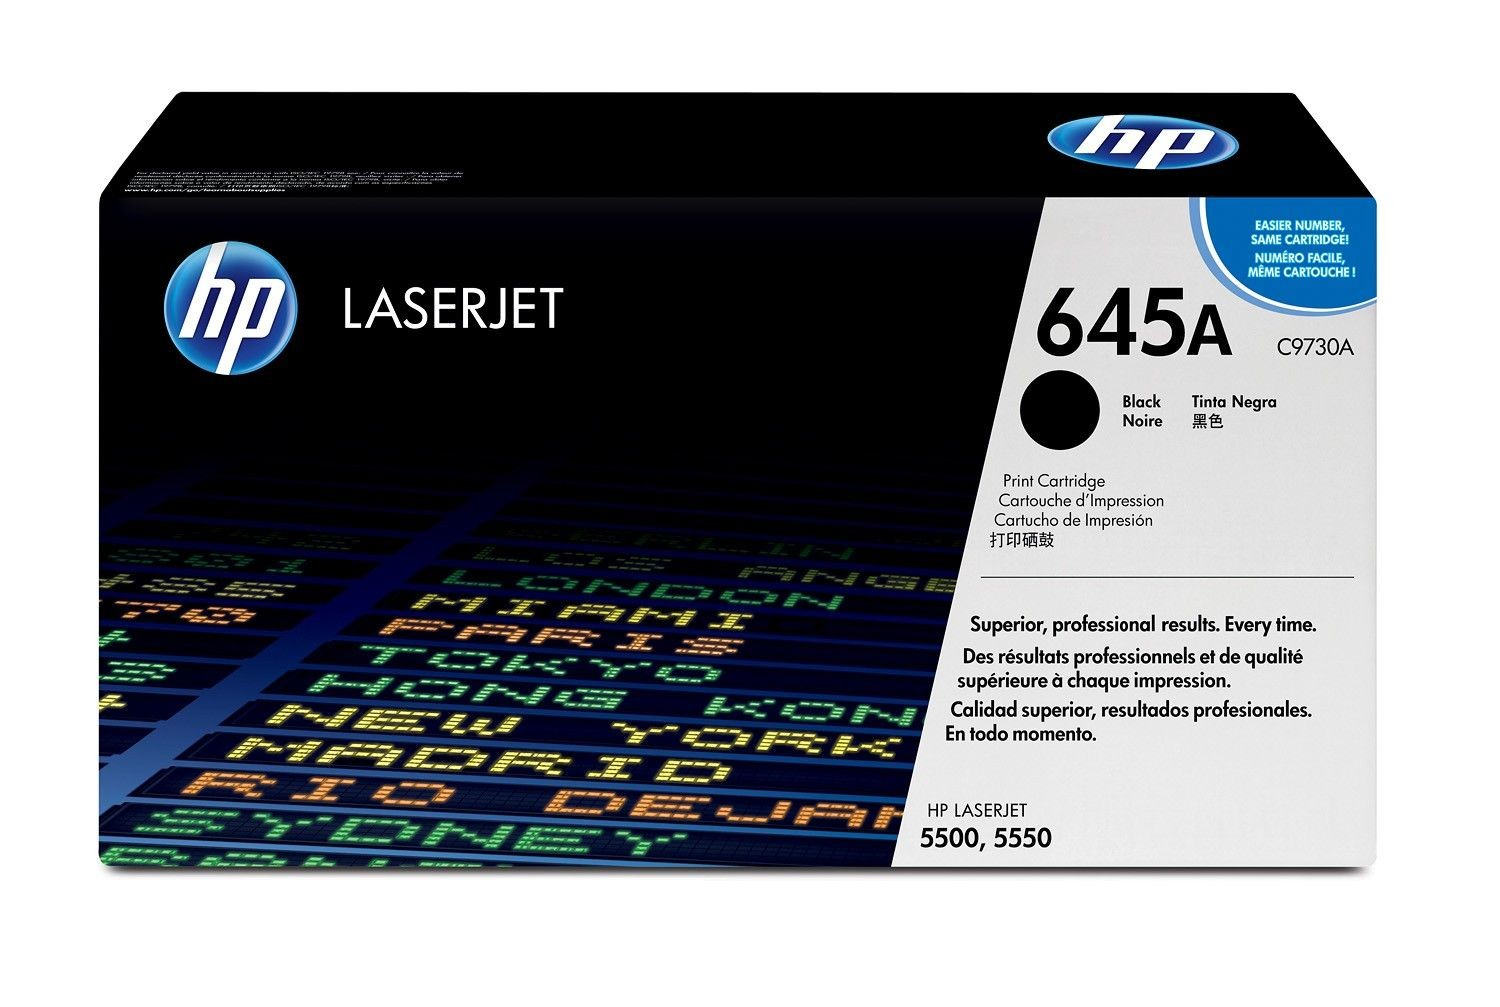 HP toner Black Color LaserJet 5500